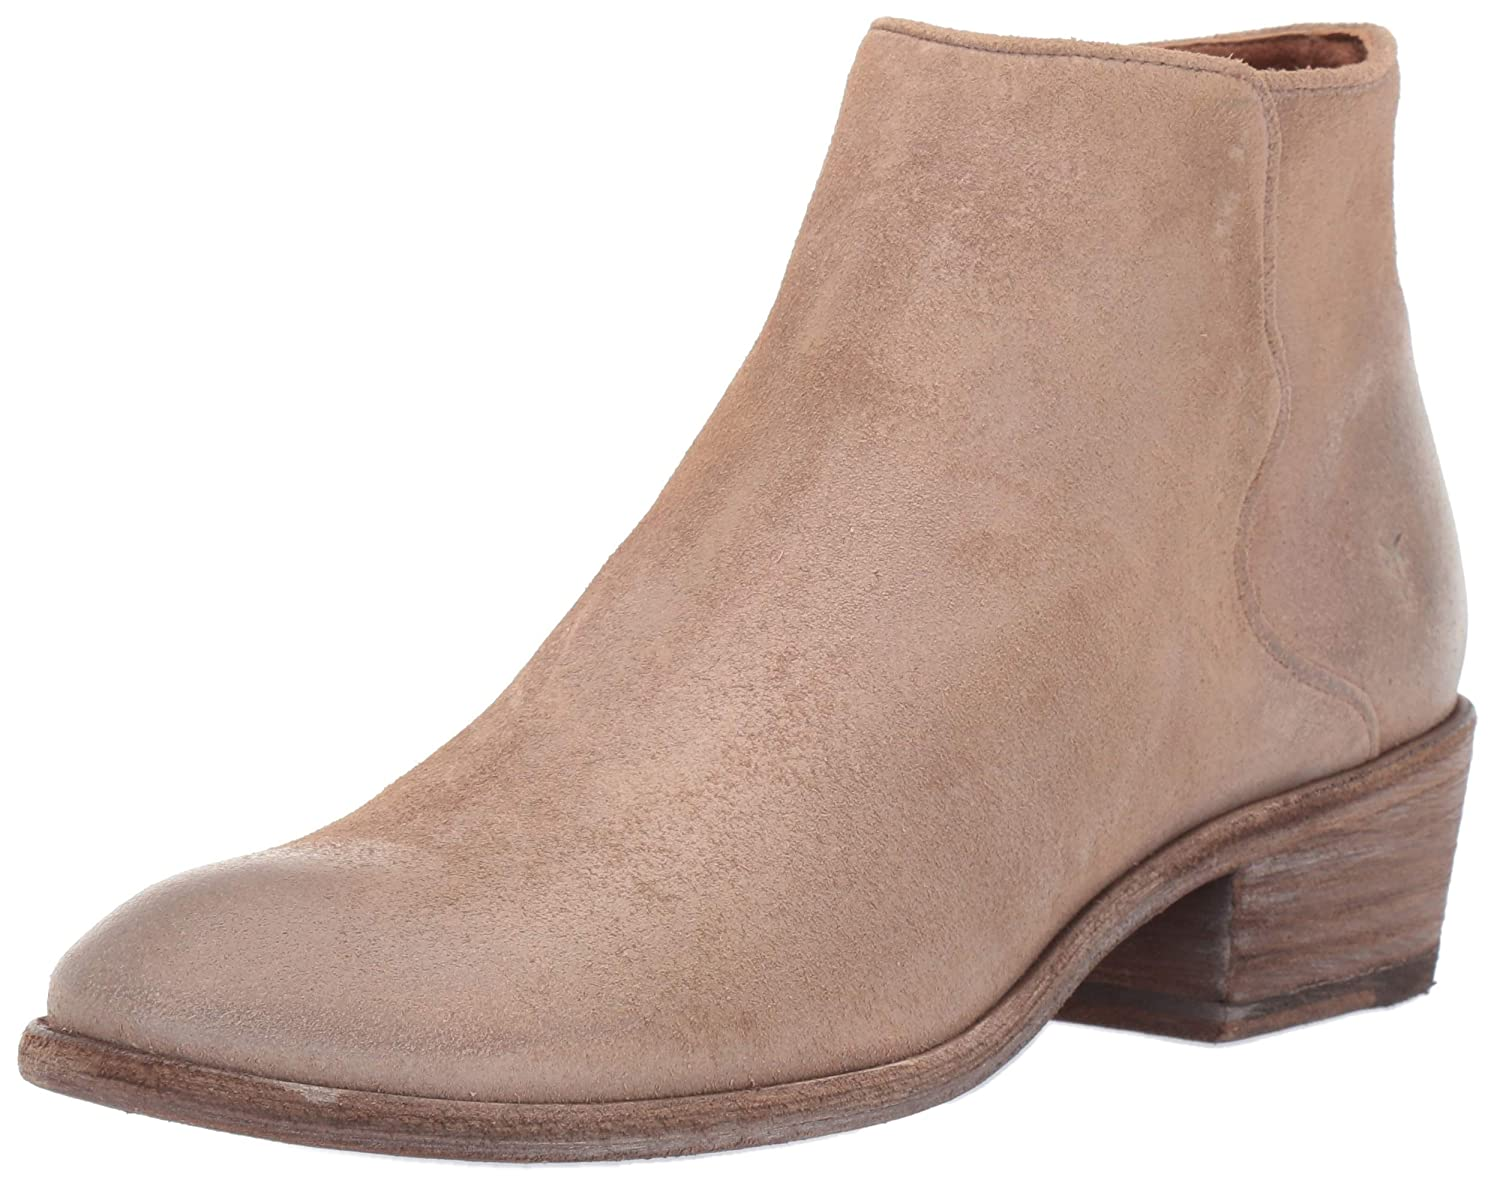 Beige Multi Frye Womens Carson Piping Bootie Ankle Boot